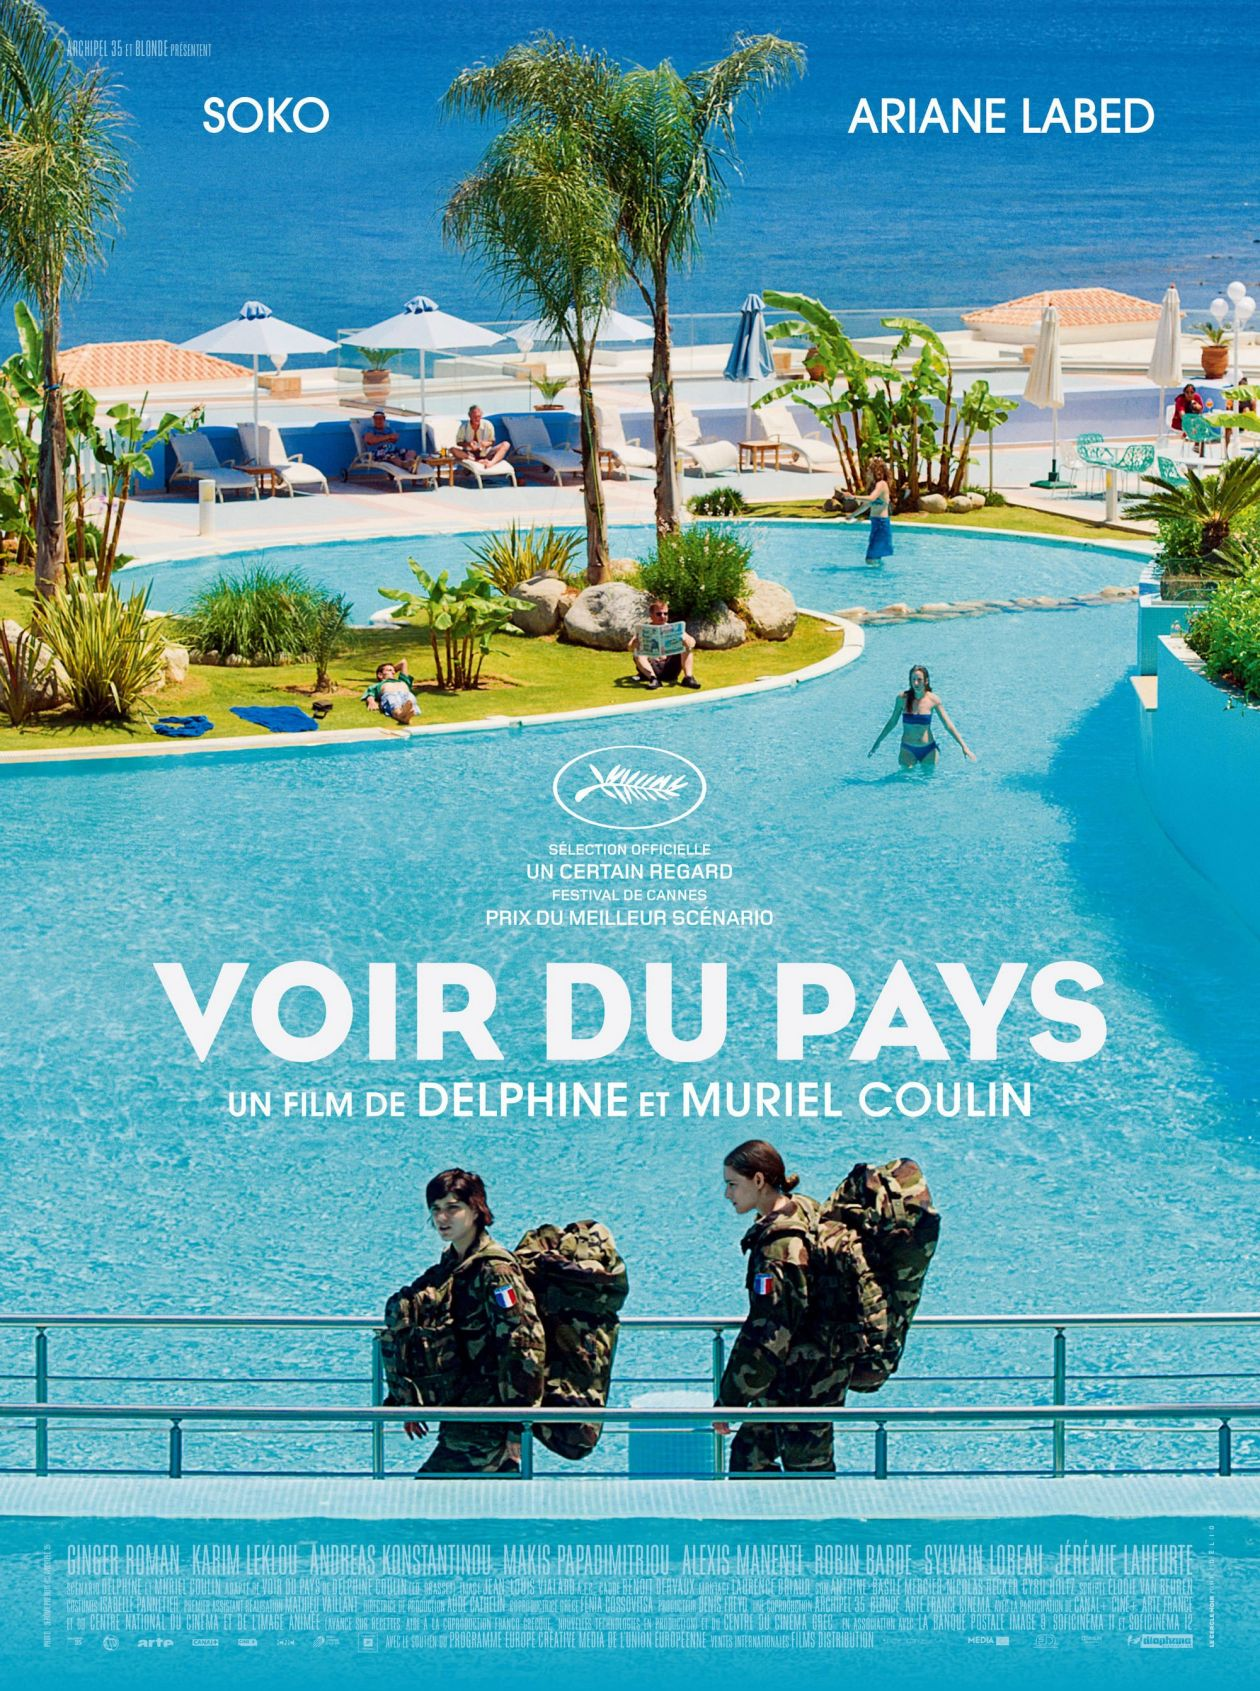 Ariane Labed / Soko actresses actrices comédiennes | Voir du pays / Delphine Coulin, Muriel Coulin 2016 Movie Poster Affiche film